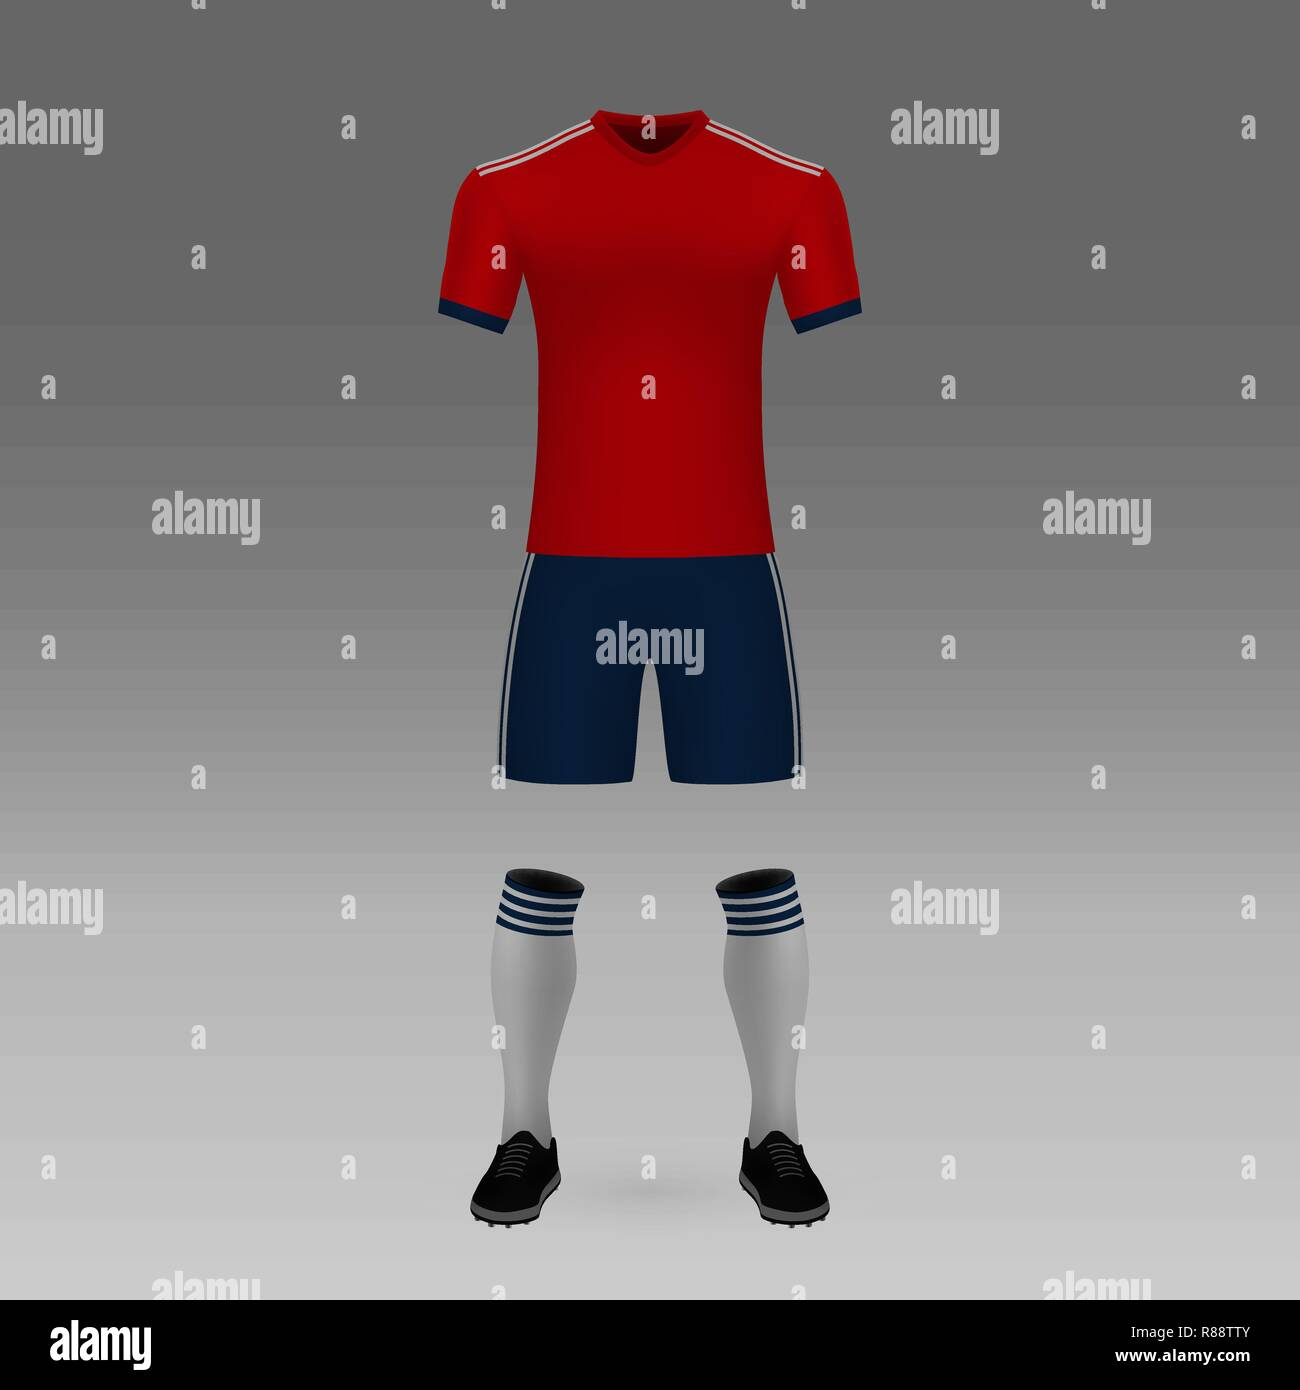 new product 5100c 922be football kit Bayern Munich, shirt template for soccer jersey ...